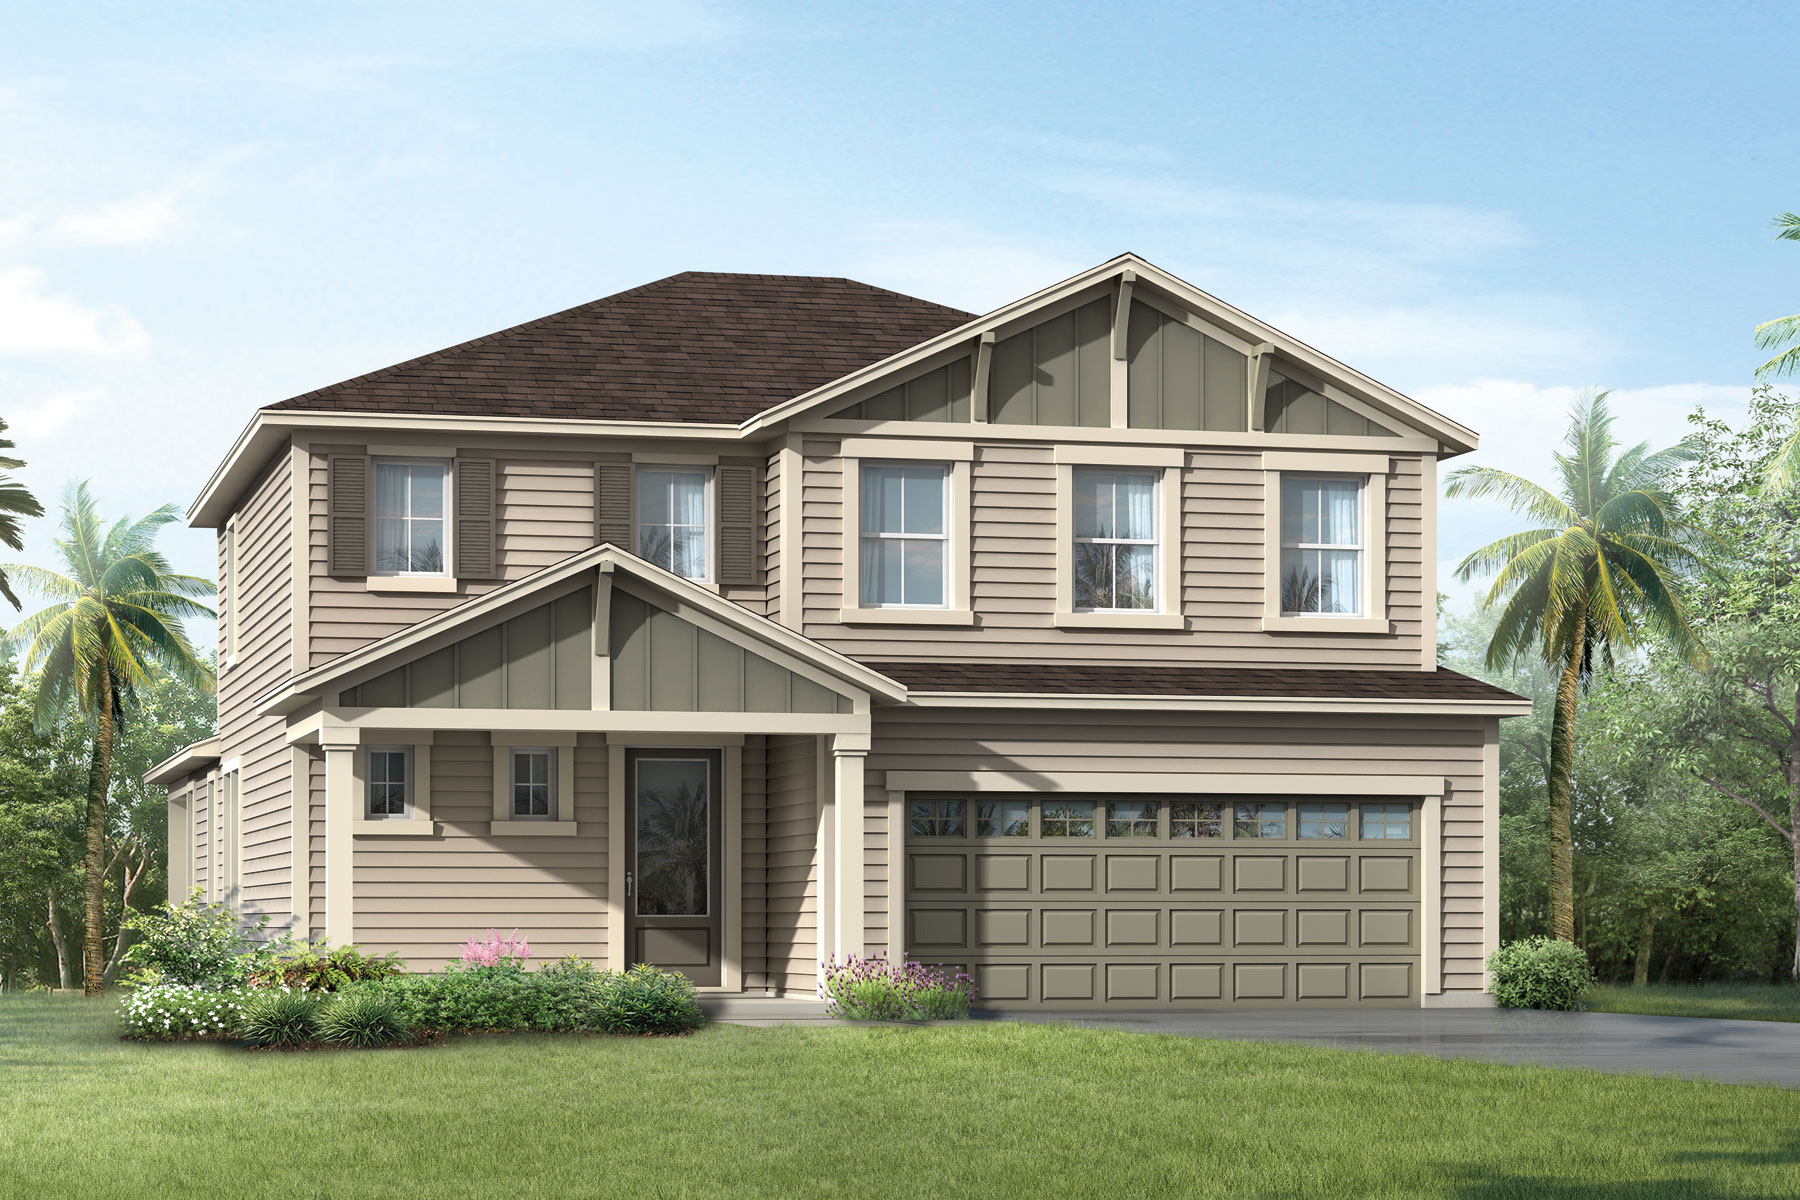 RiverTown - Arbors ElevationLowCountry_RiverTown_Sandhill_Main in St. Johns Florida by Mattamy Homes